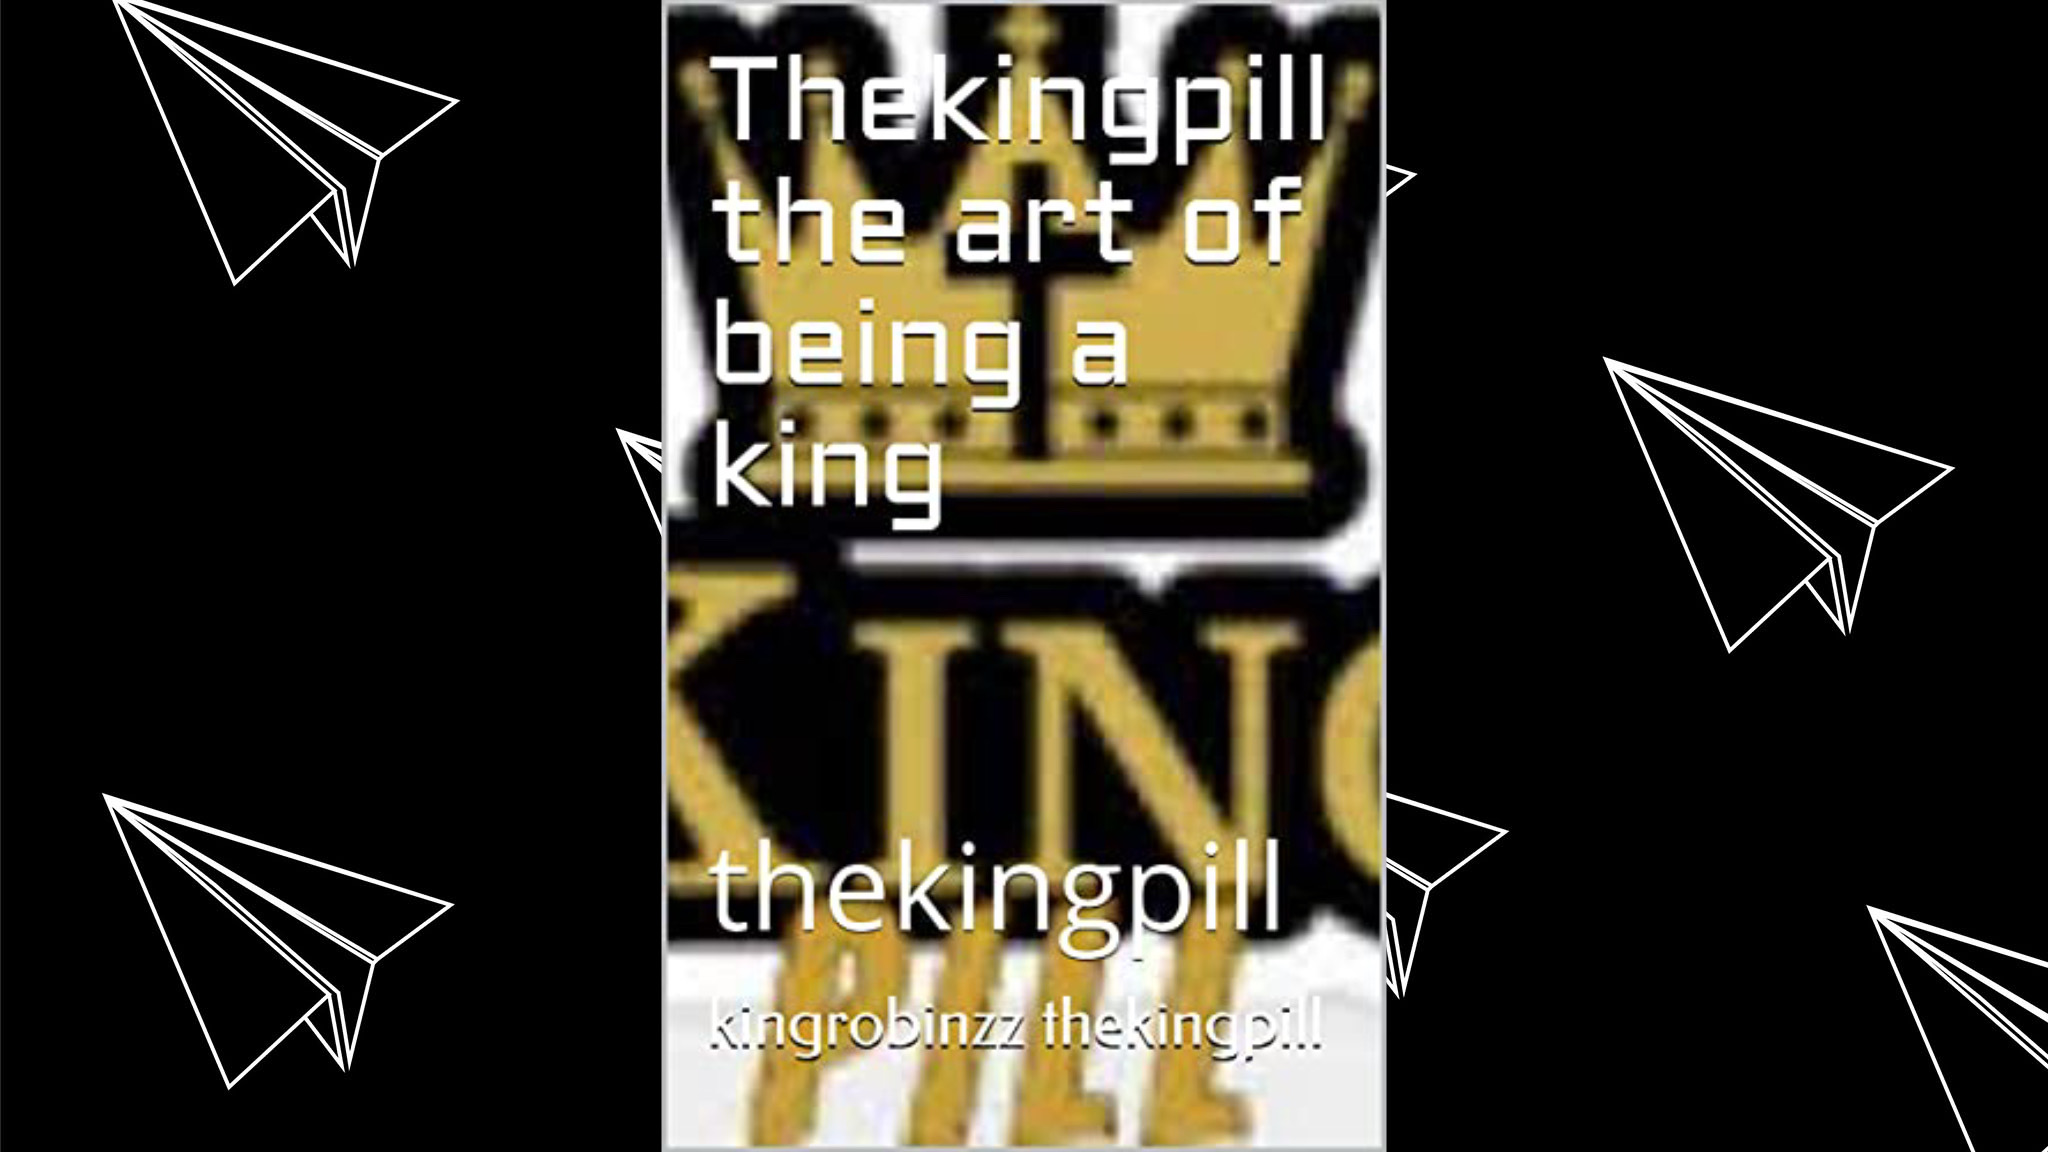 The art of being a king